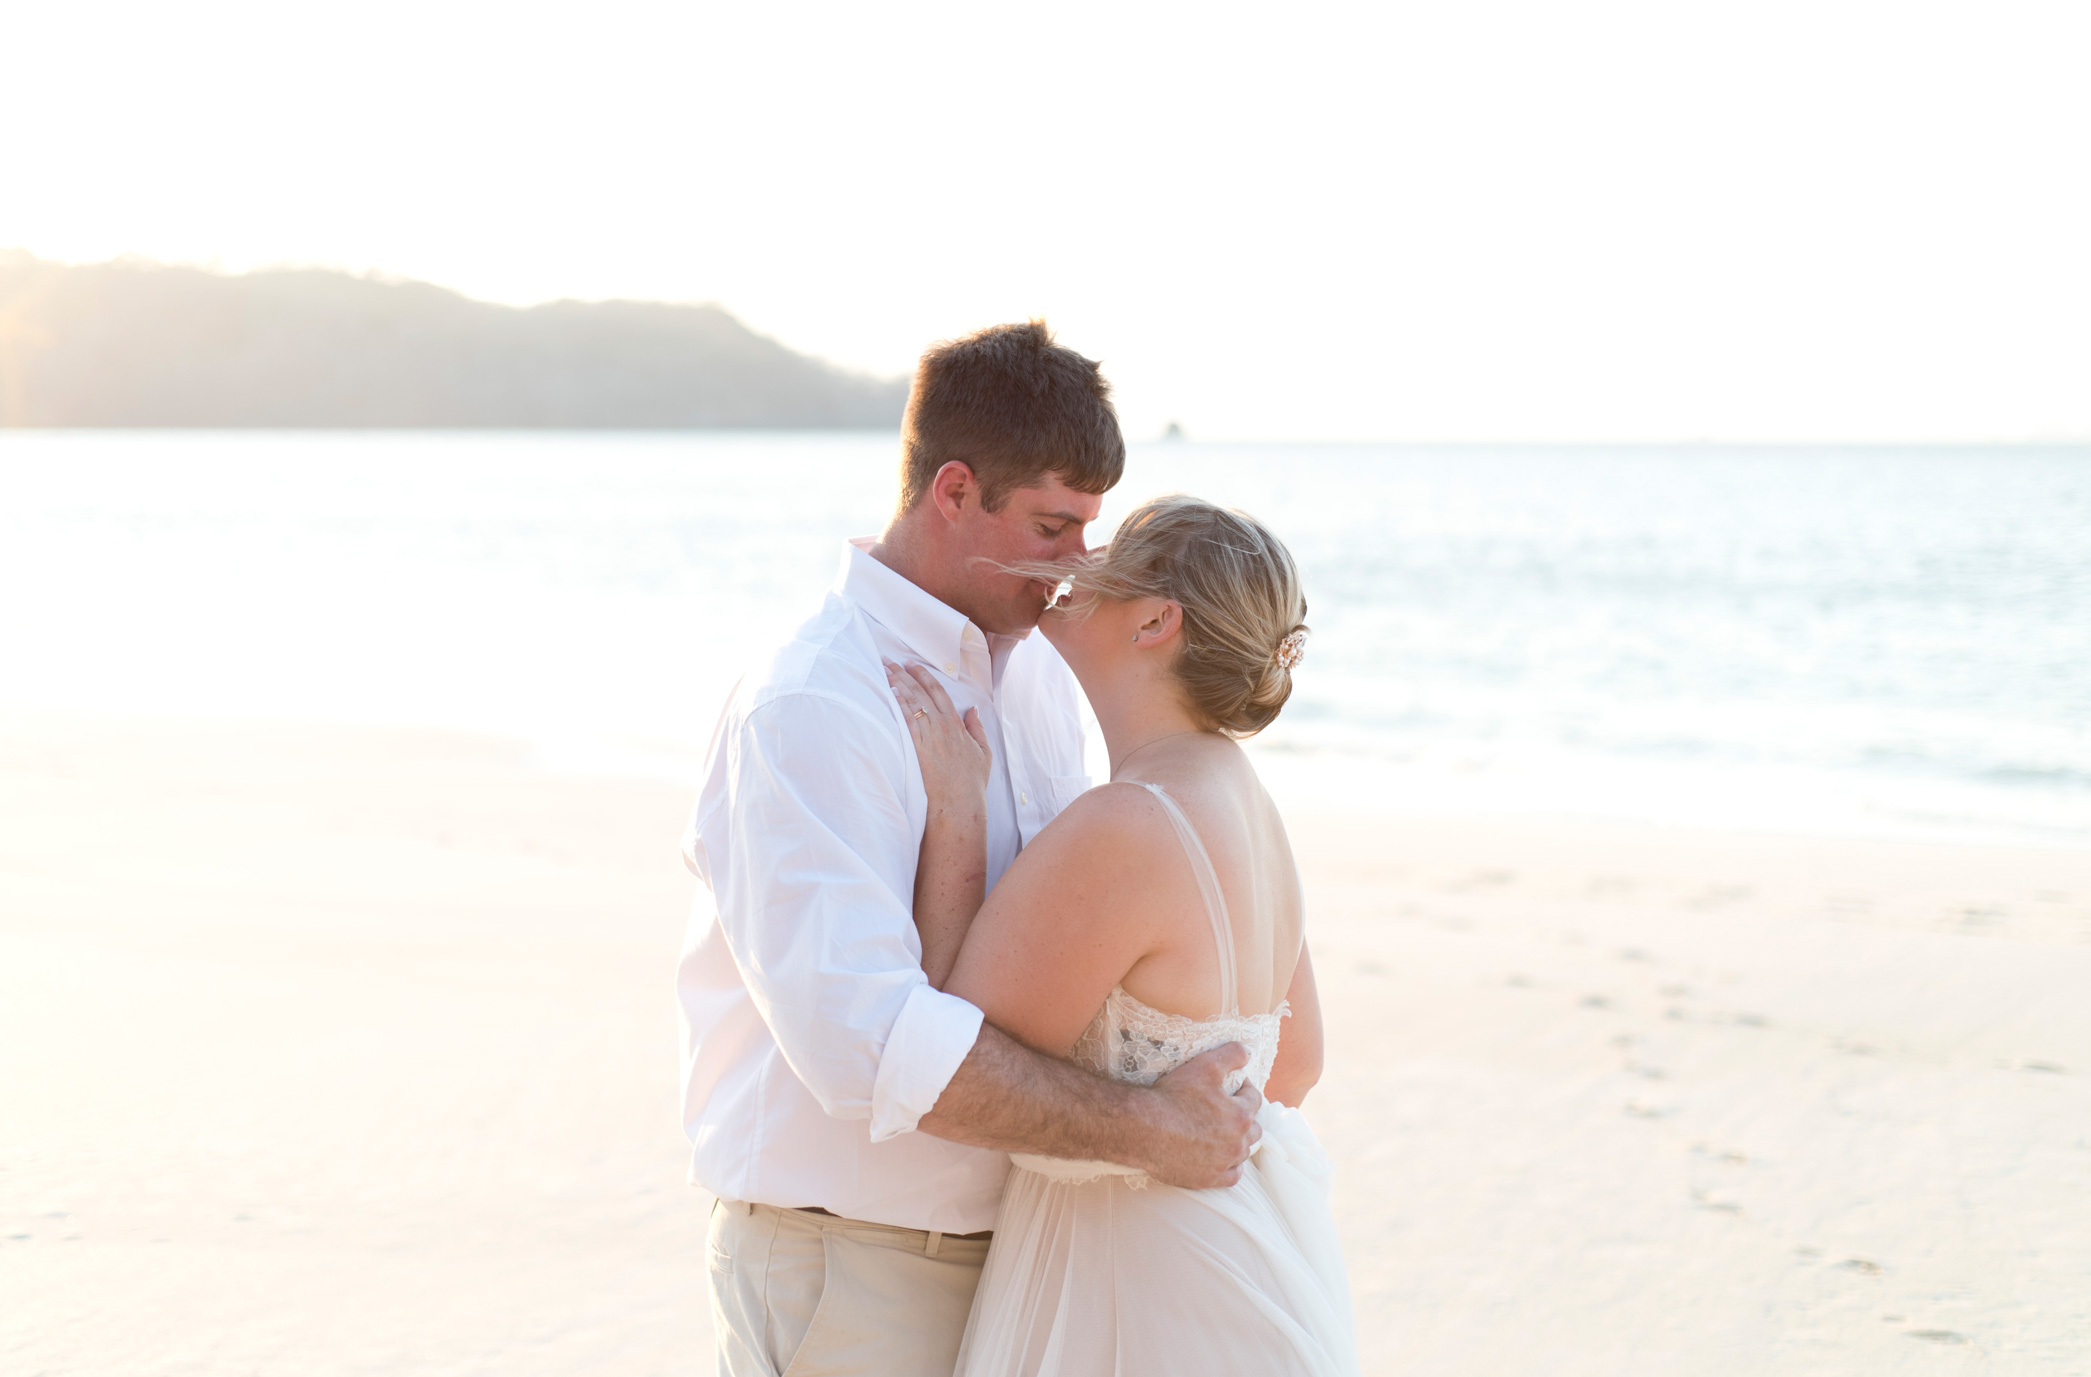 Bride and groom looking into each others eyes on the beach in Playa Conchal, Costa Rica. Photographed by Kristen M. Brown, Samba to the Sea Photography.